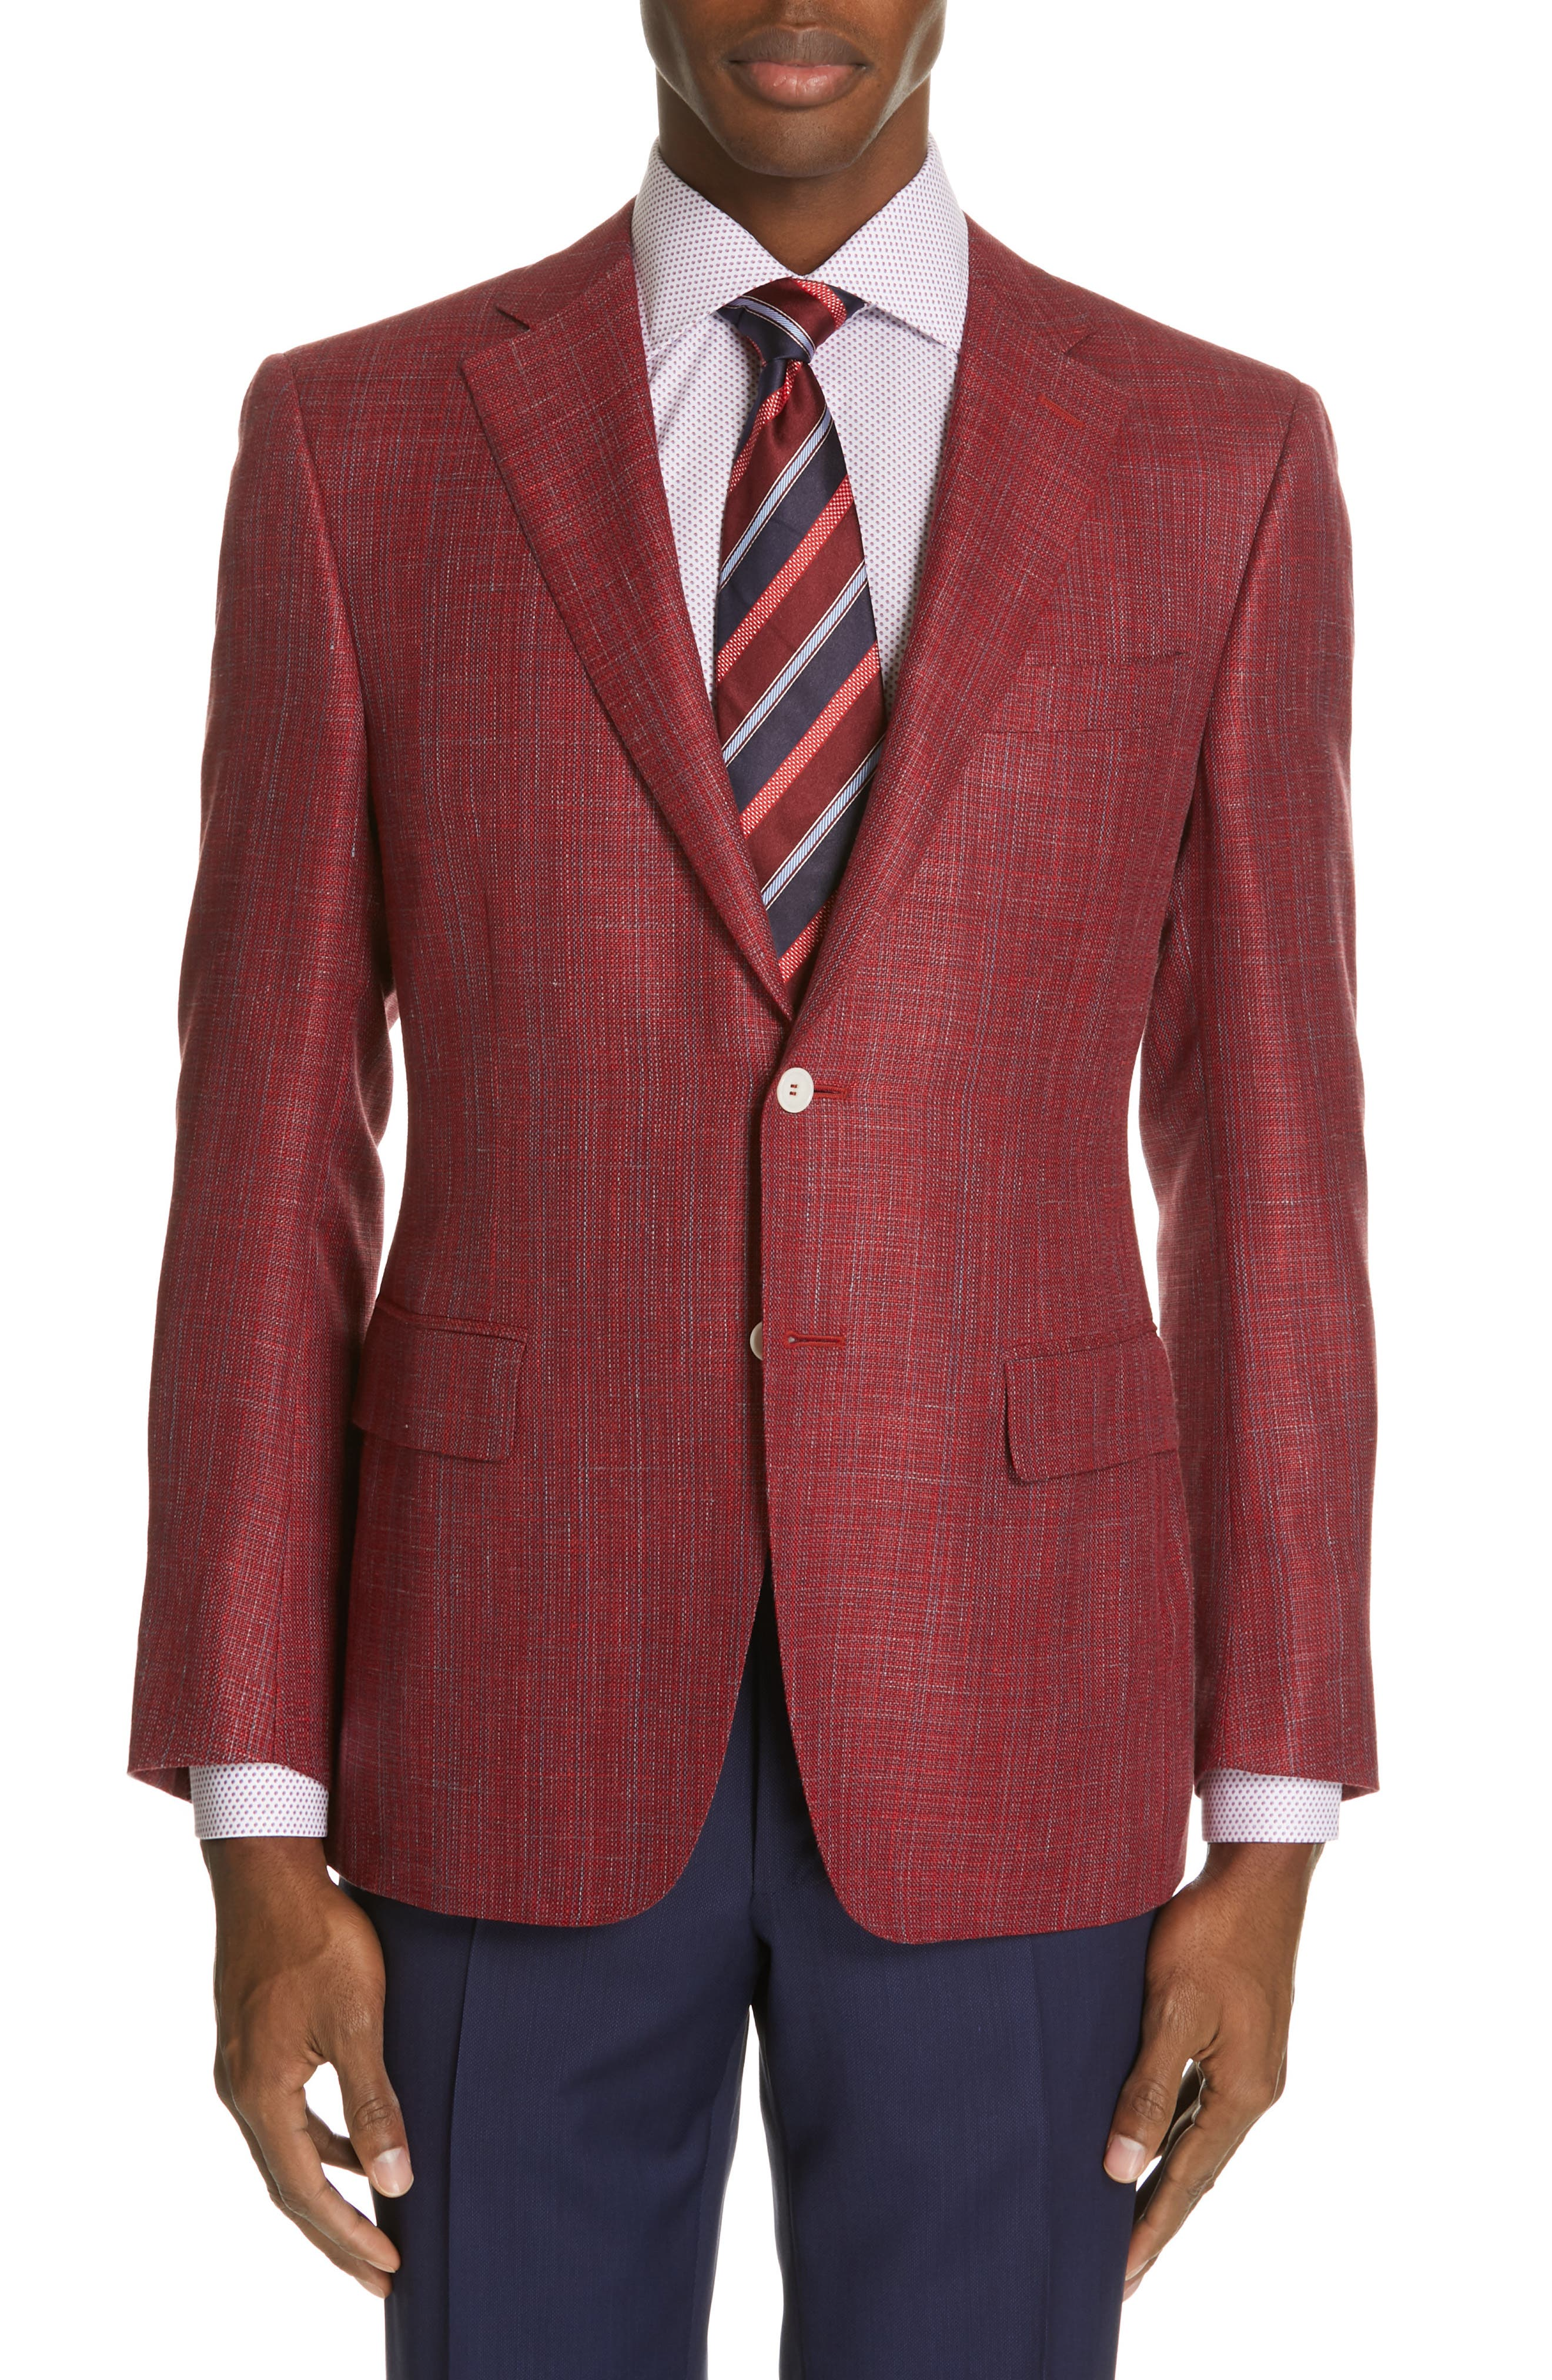 CANALI, Siena Classic Fit Wool, Silk & Linen Blend Sport Coat, Main thumbnail 1, color, RED